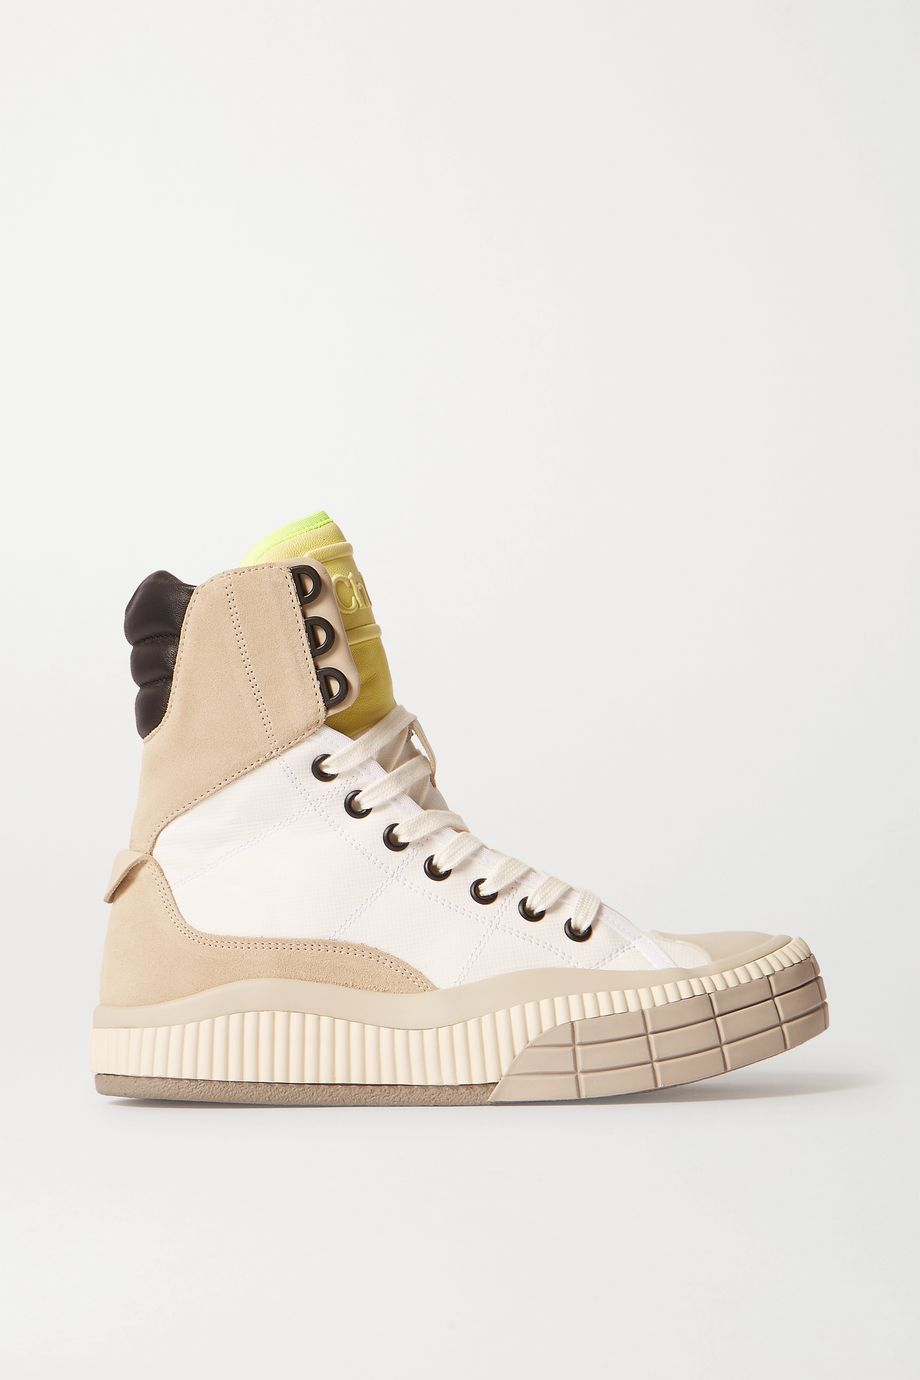 Chloé Clint suede, leather and rubber-trimmed canvas high-top sneakers